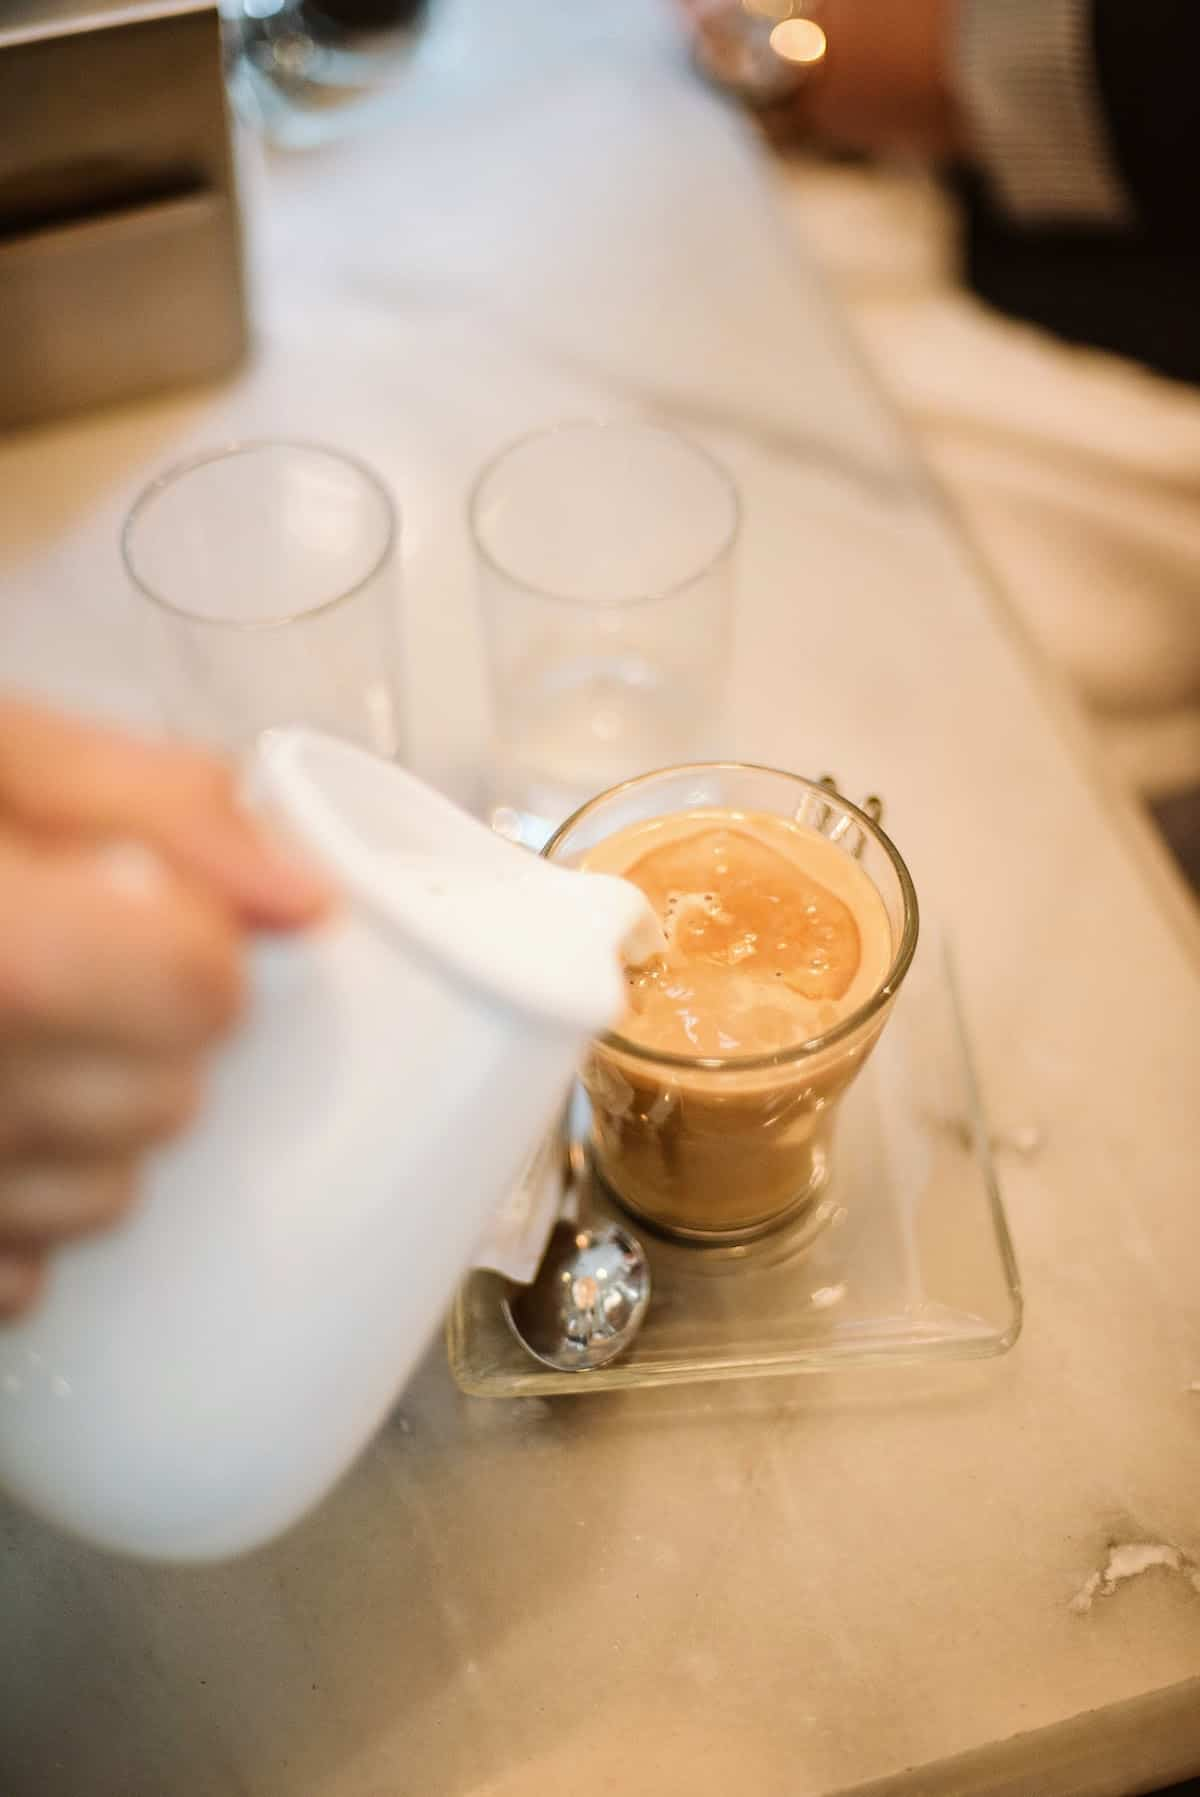 Overhead shot of a person pouring milk into a clear glass of coffee.